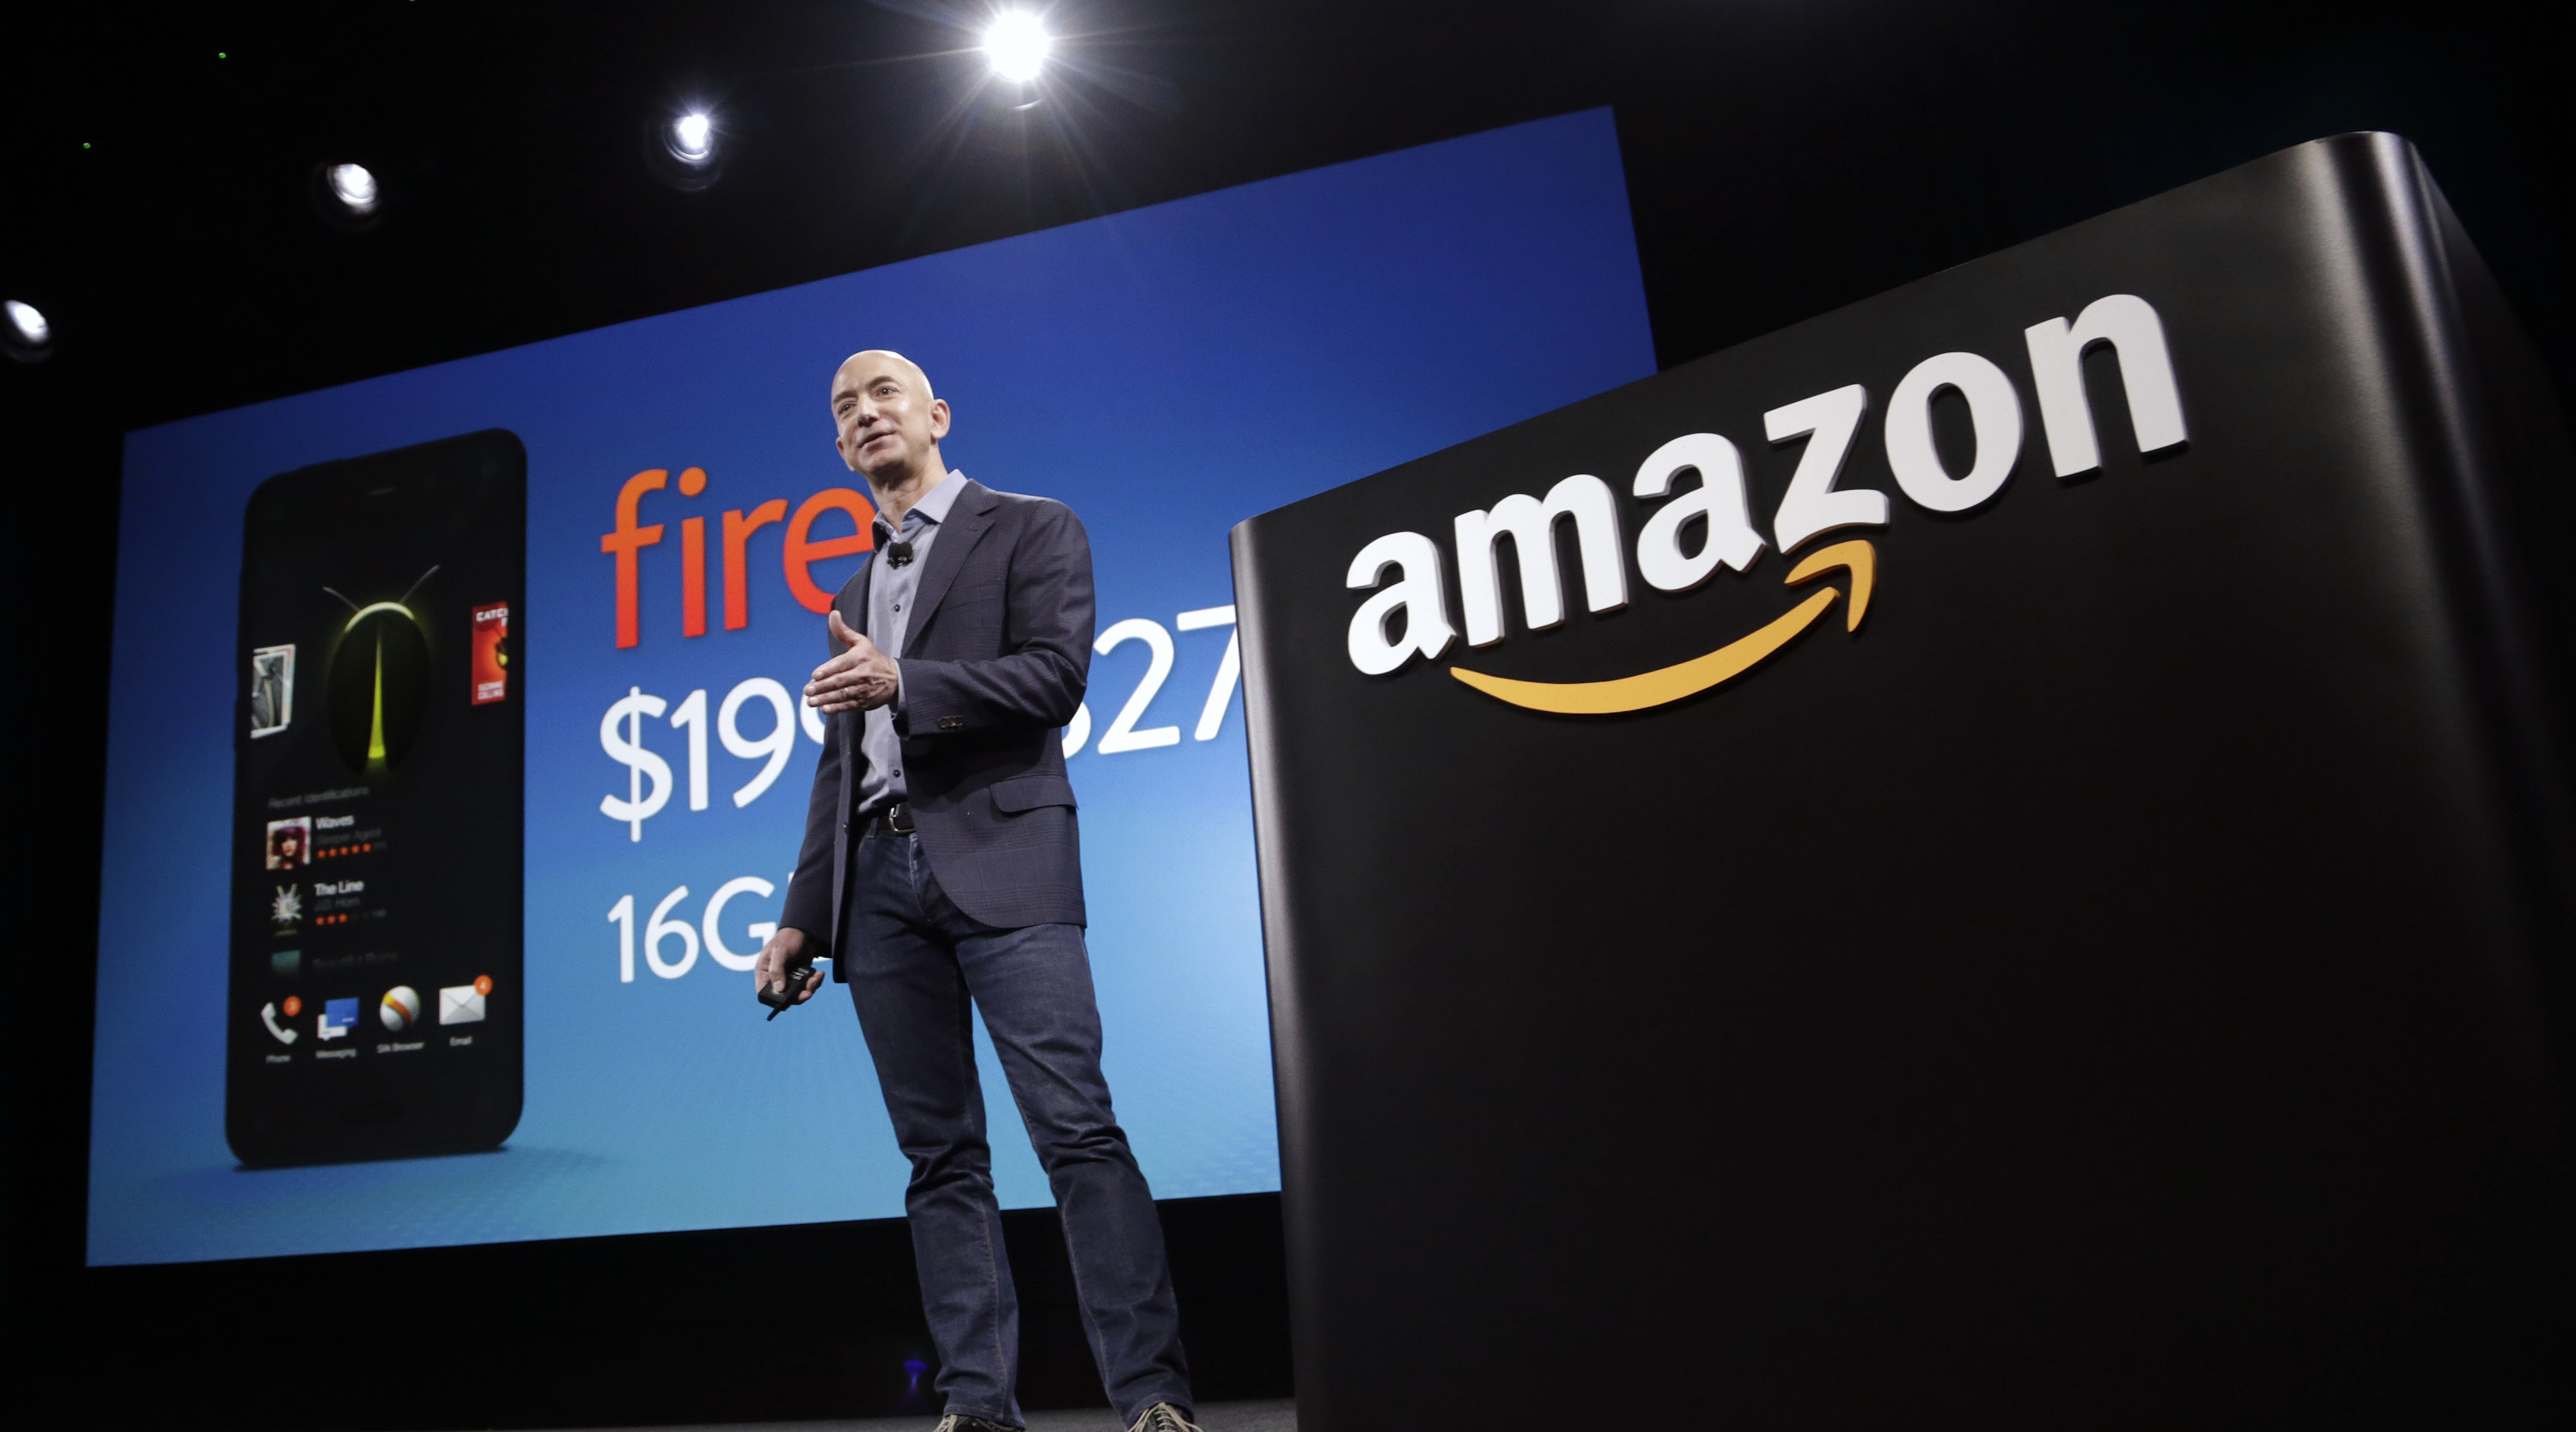 Amazon CEO Bezos talks about his company's new Fire smartphone at a news conference in Seattle, Washington